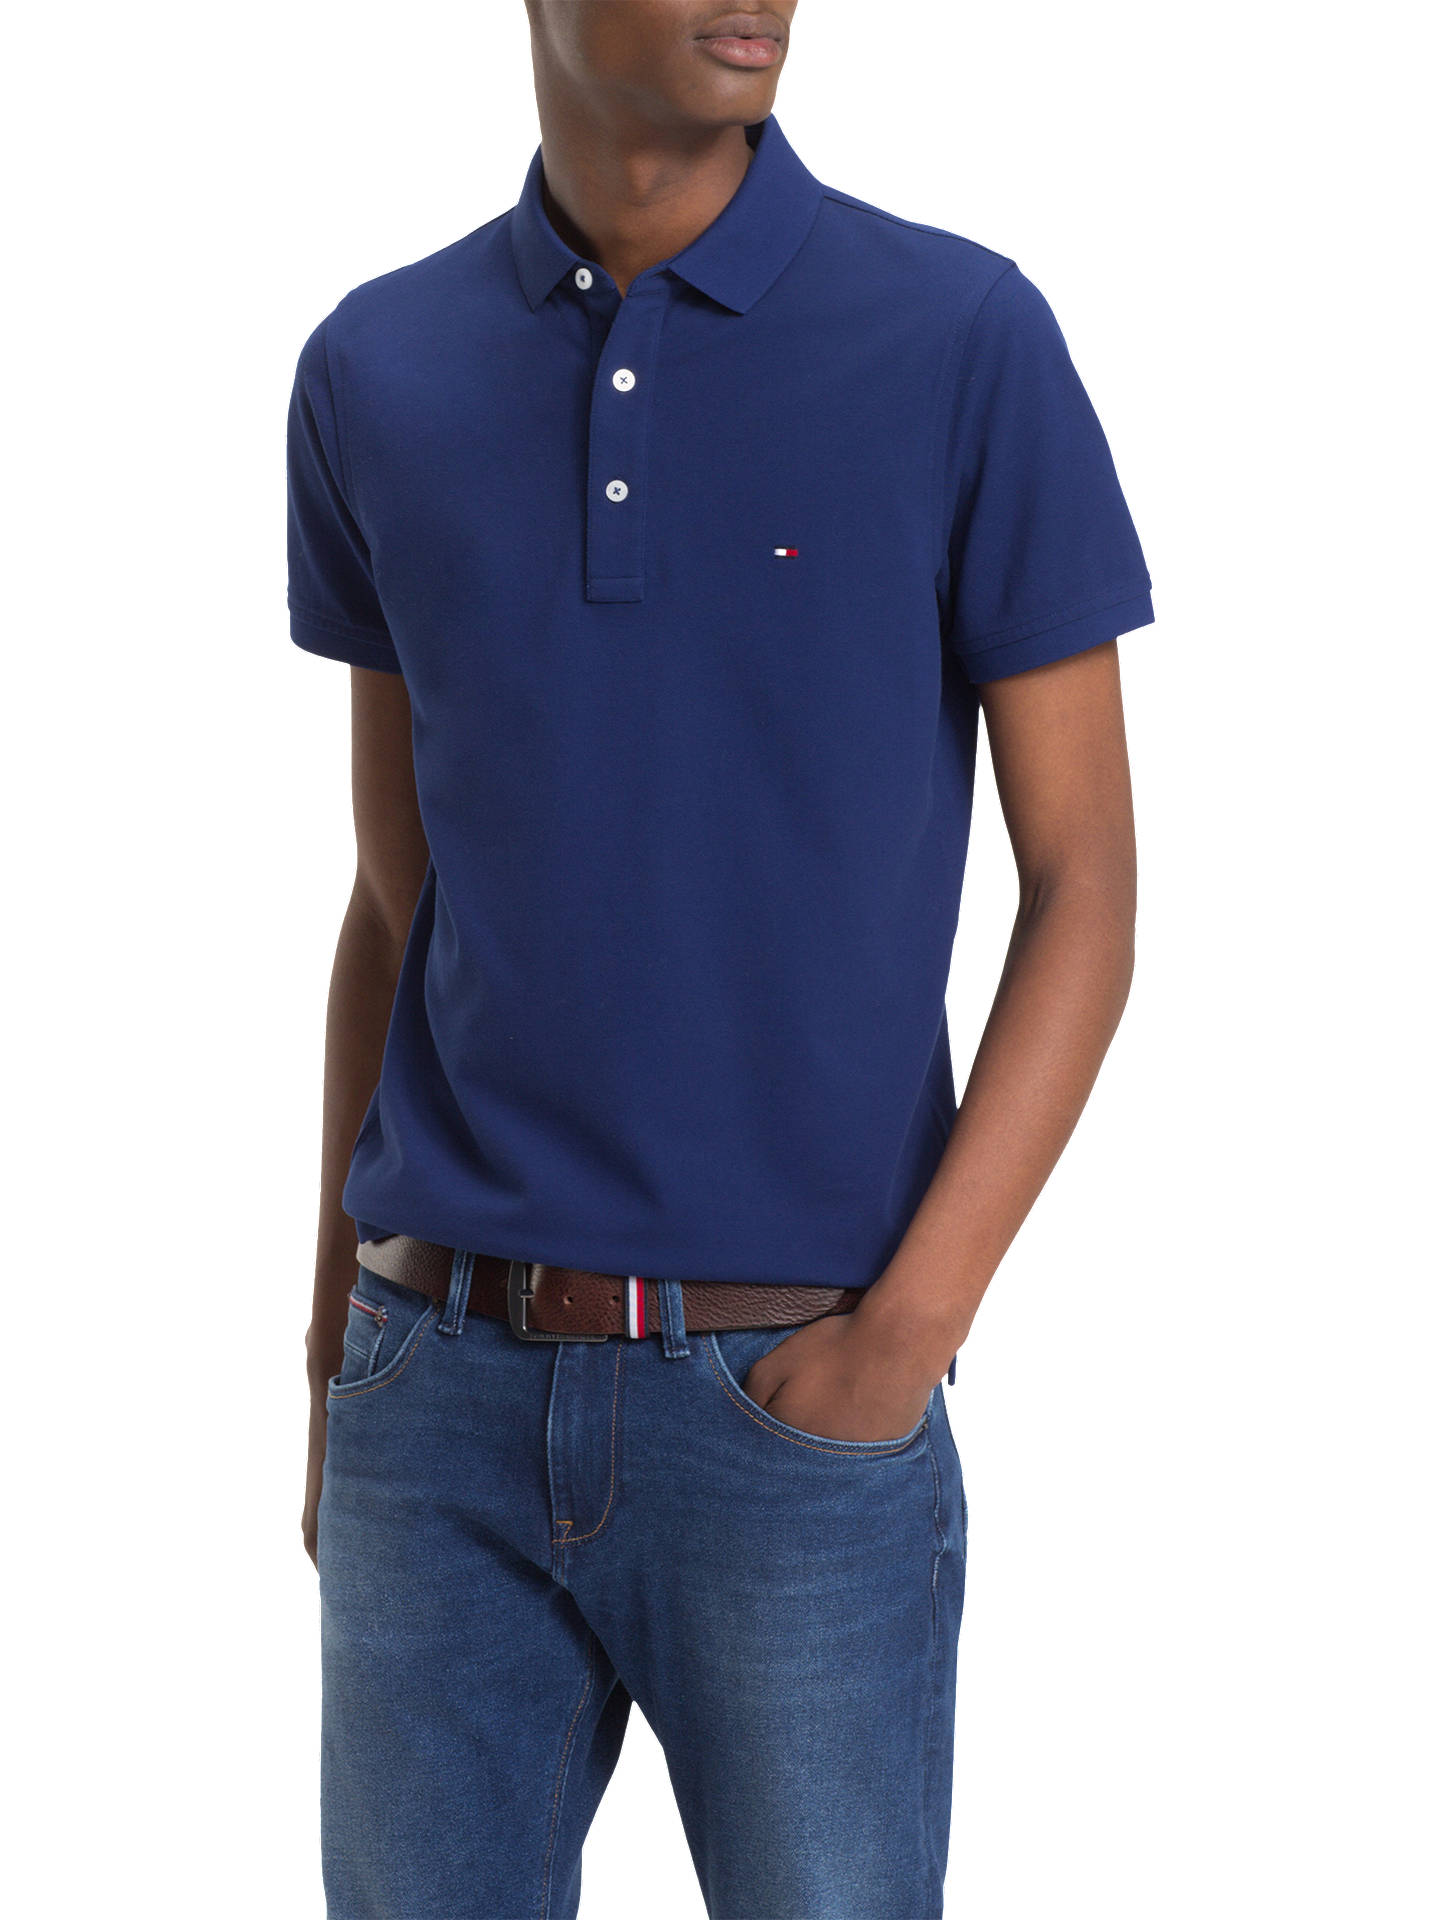 780a6471 Buy Tommy Hilfiger Slim Polo Shirt, Blue, S Online at johnlewis.com ...